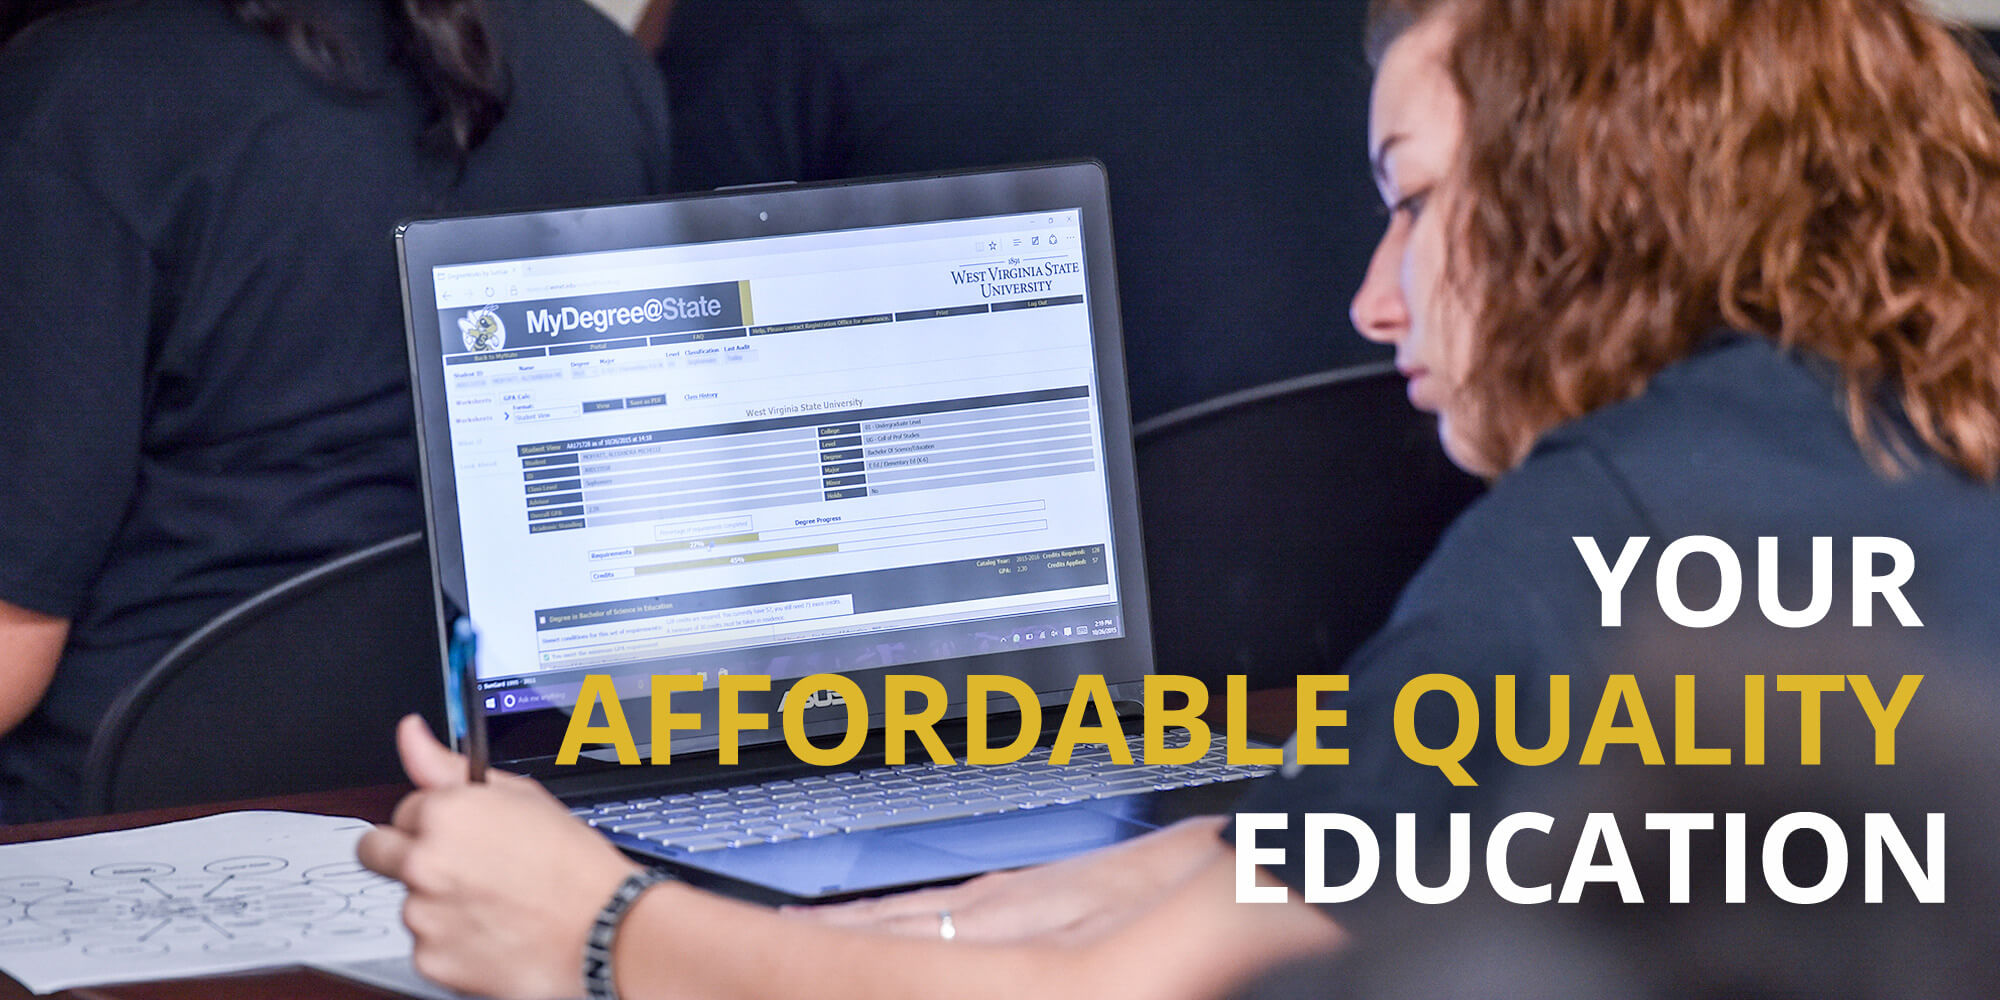 Future - Your Affordable Quality Education